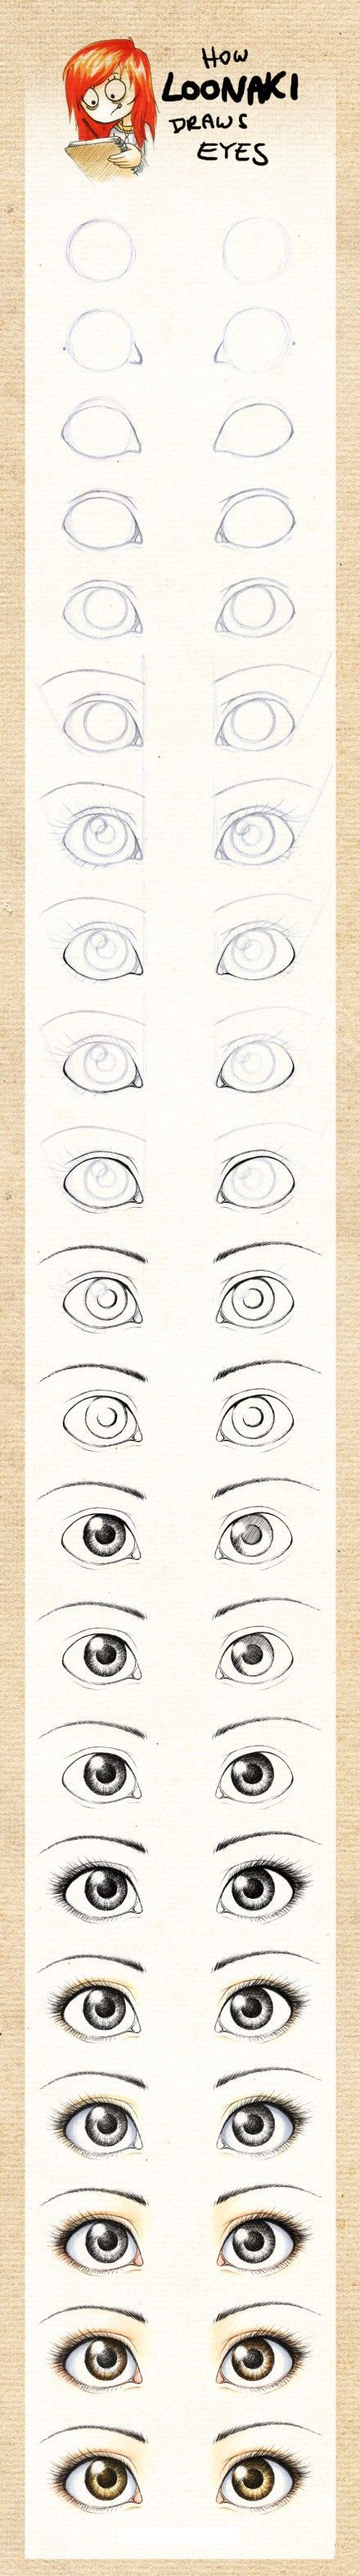 best dessiner images on pinterest easy designs to draw drawing